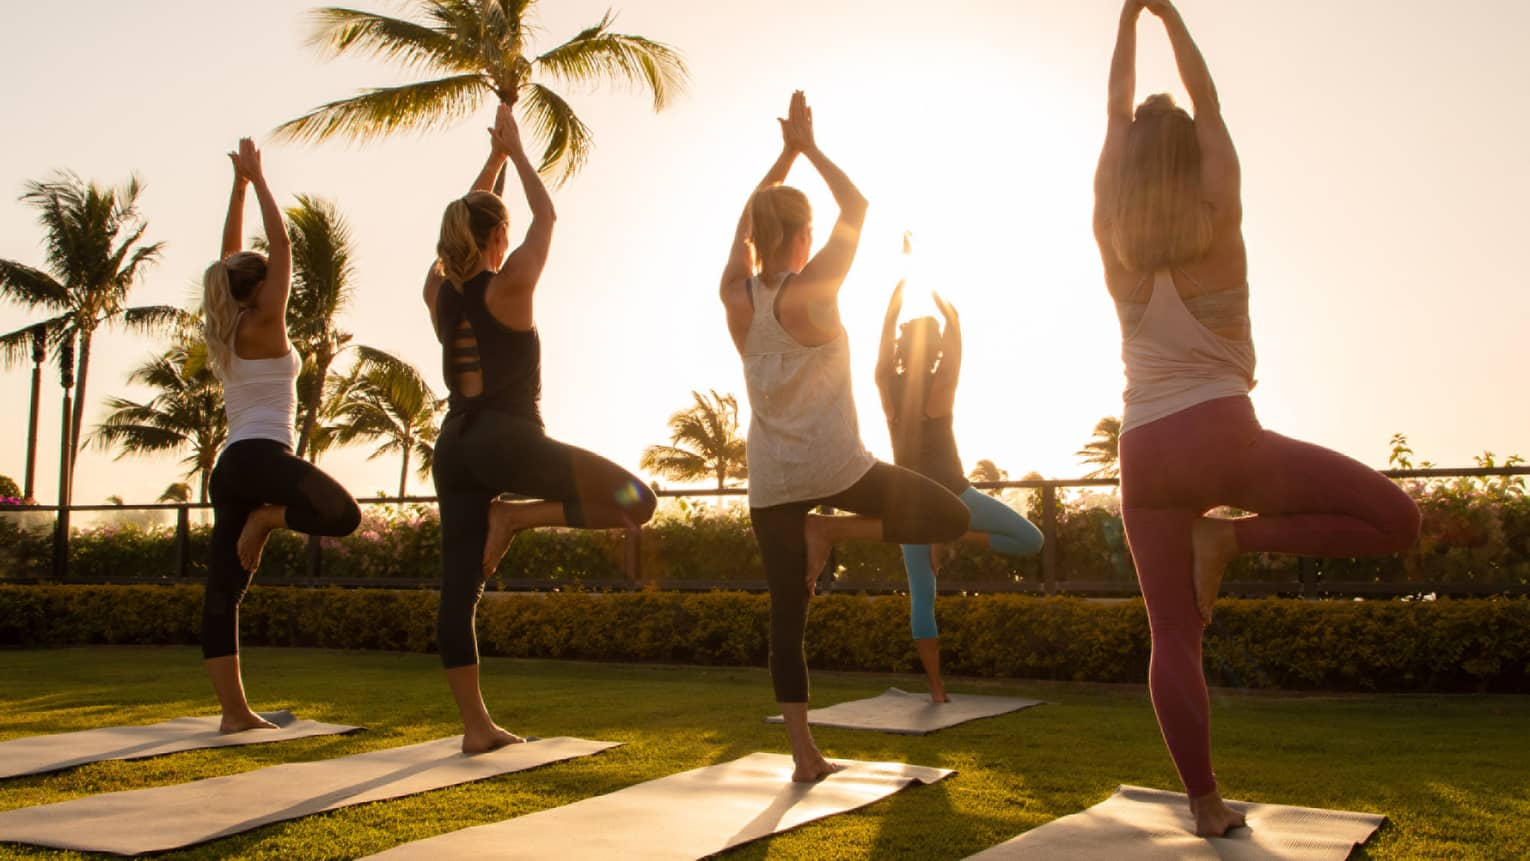 Five women complete yoga poses on mats near the beach with palm trees in the background